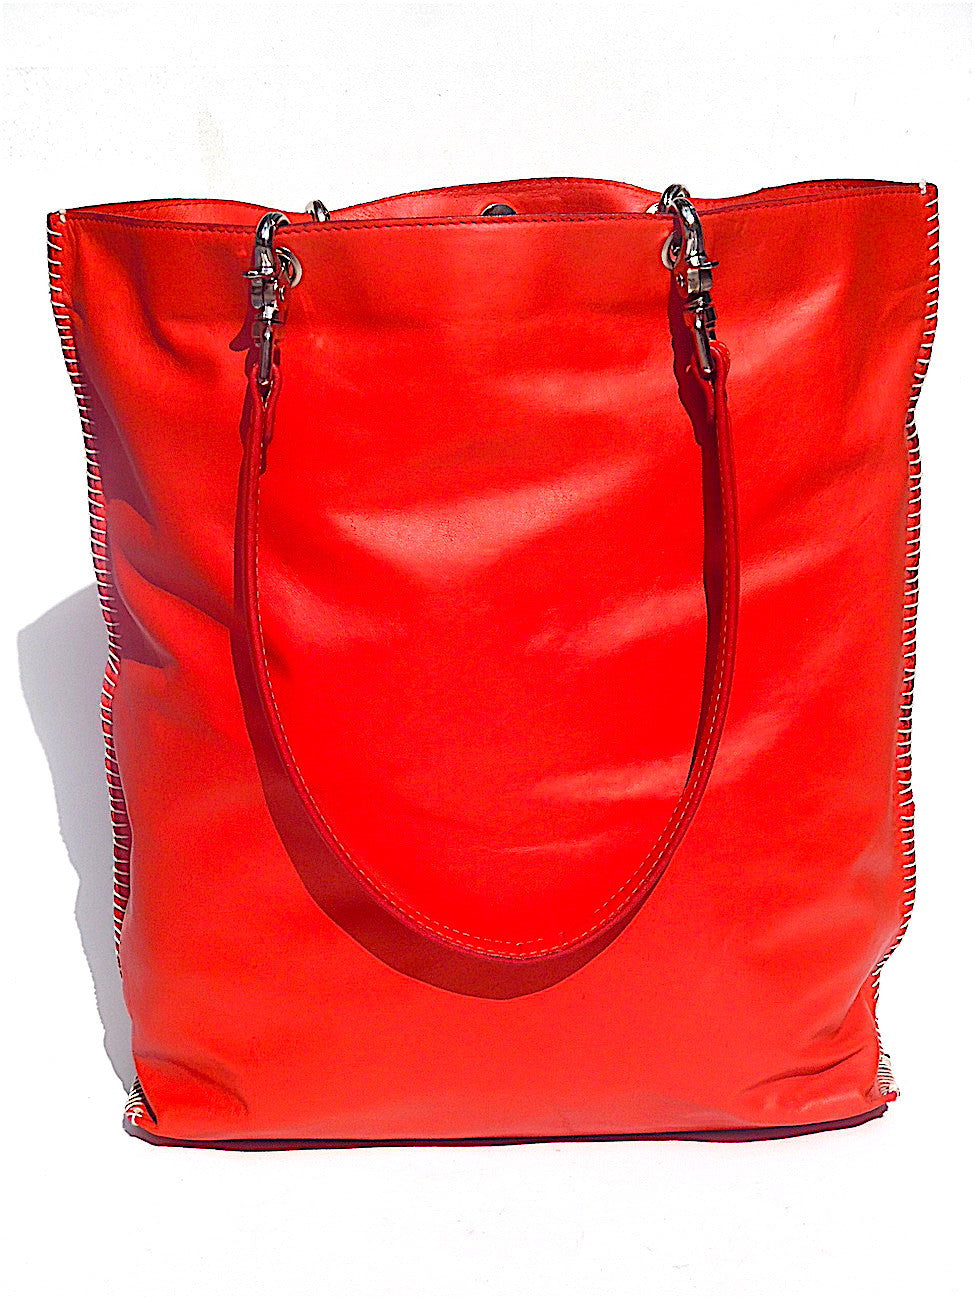 Gajumbo Tote Bag Napa Leather Red